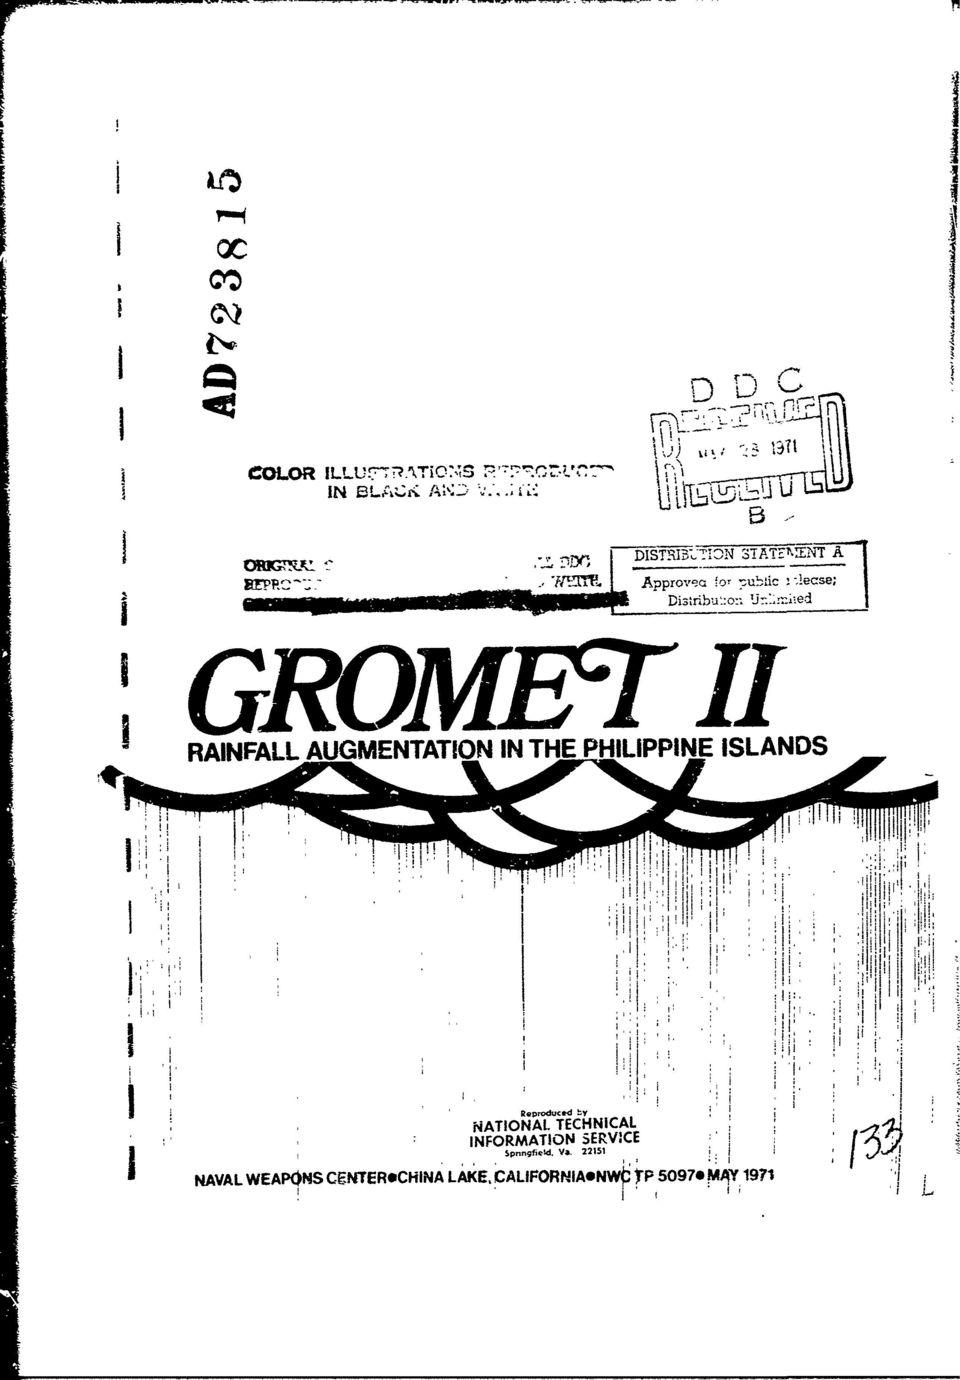 ". GROMETI 1: 1 "" i1 RAINFALL AUGMENTATION IN THE PHILIPPINE ISLANDS!"